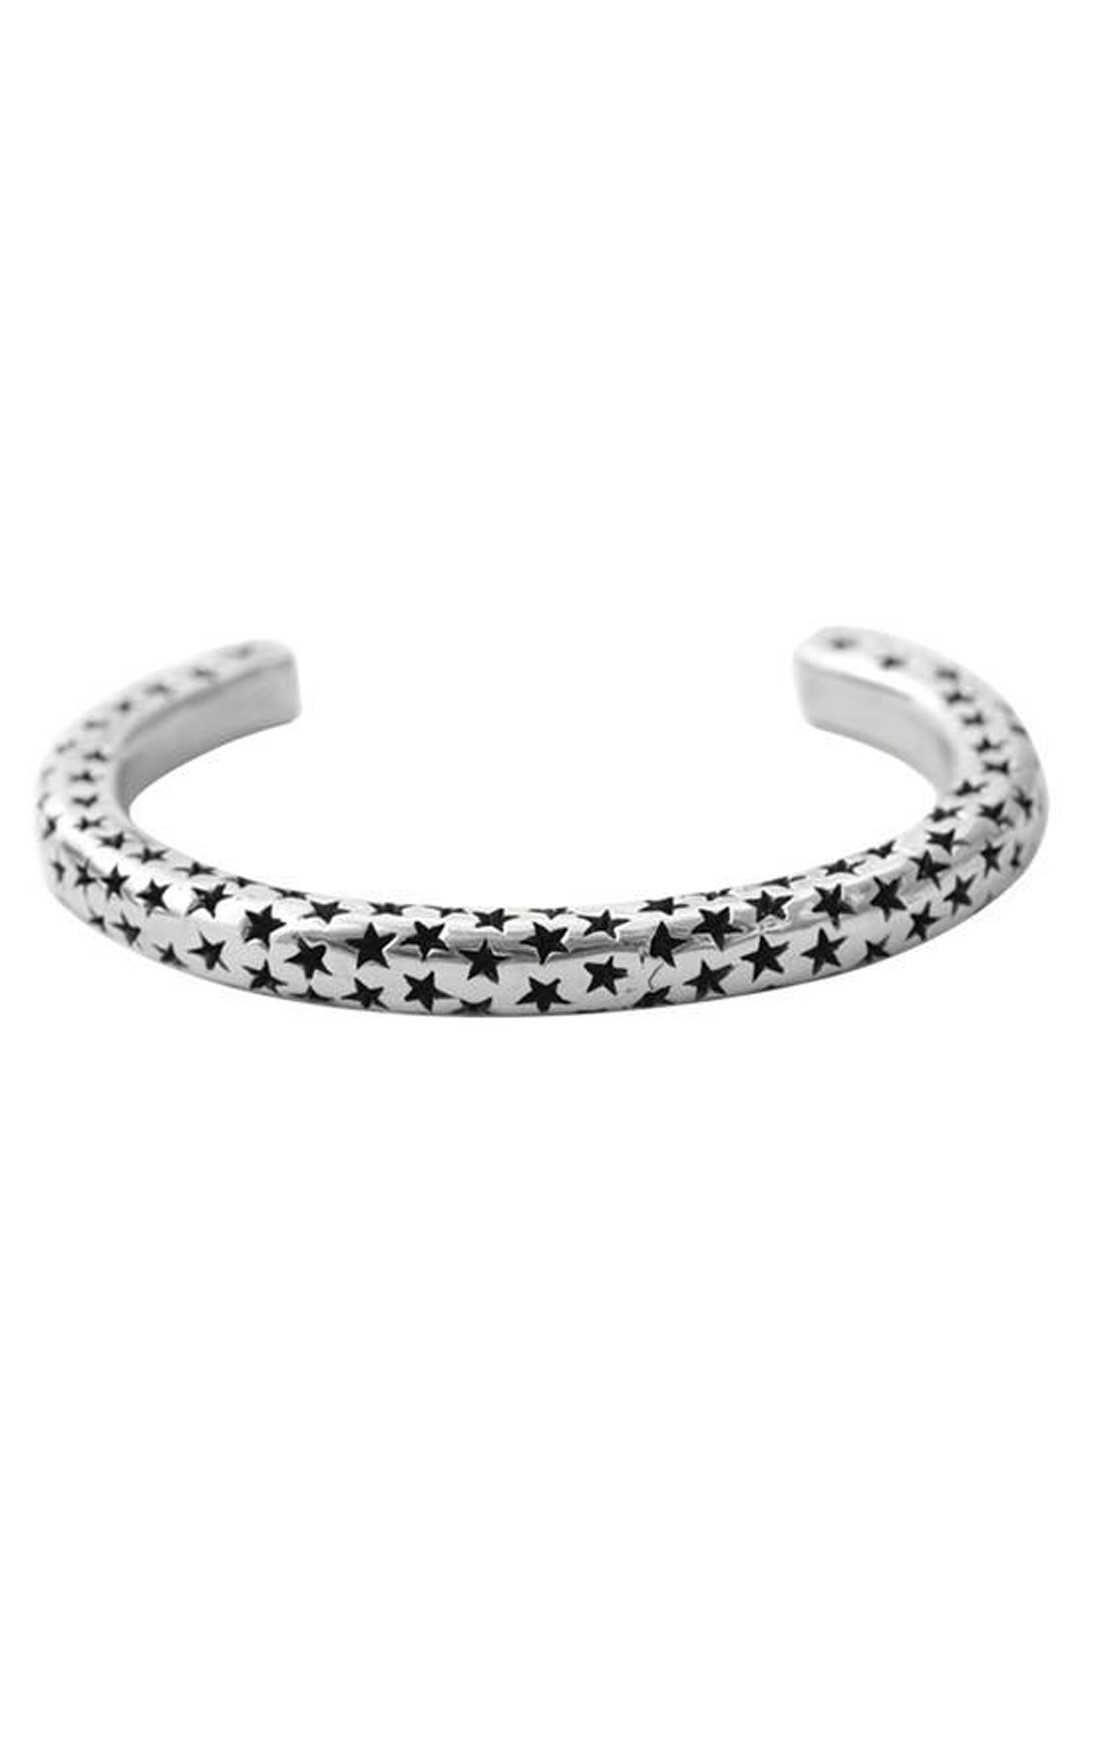 King Baby - Sterling Silver Thin Stars Cuff (K40-5154)